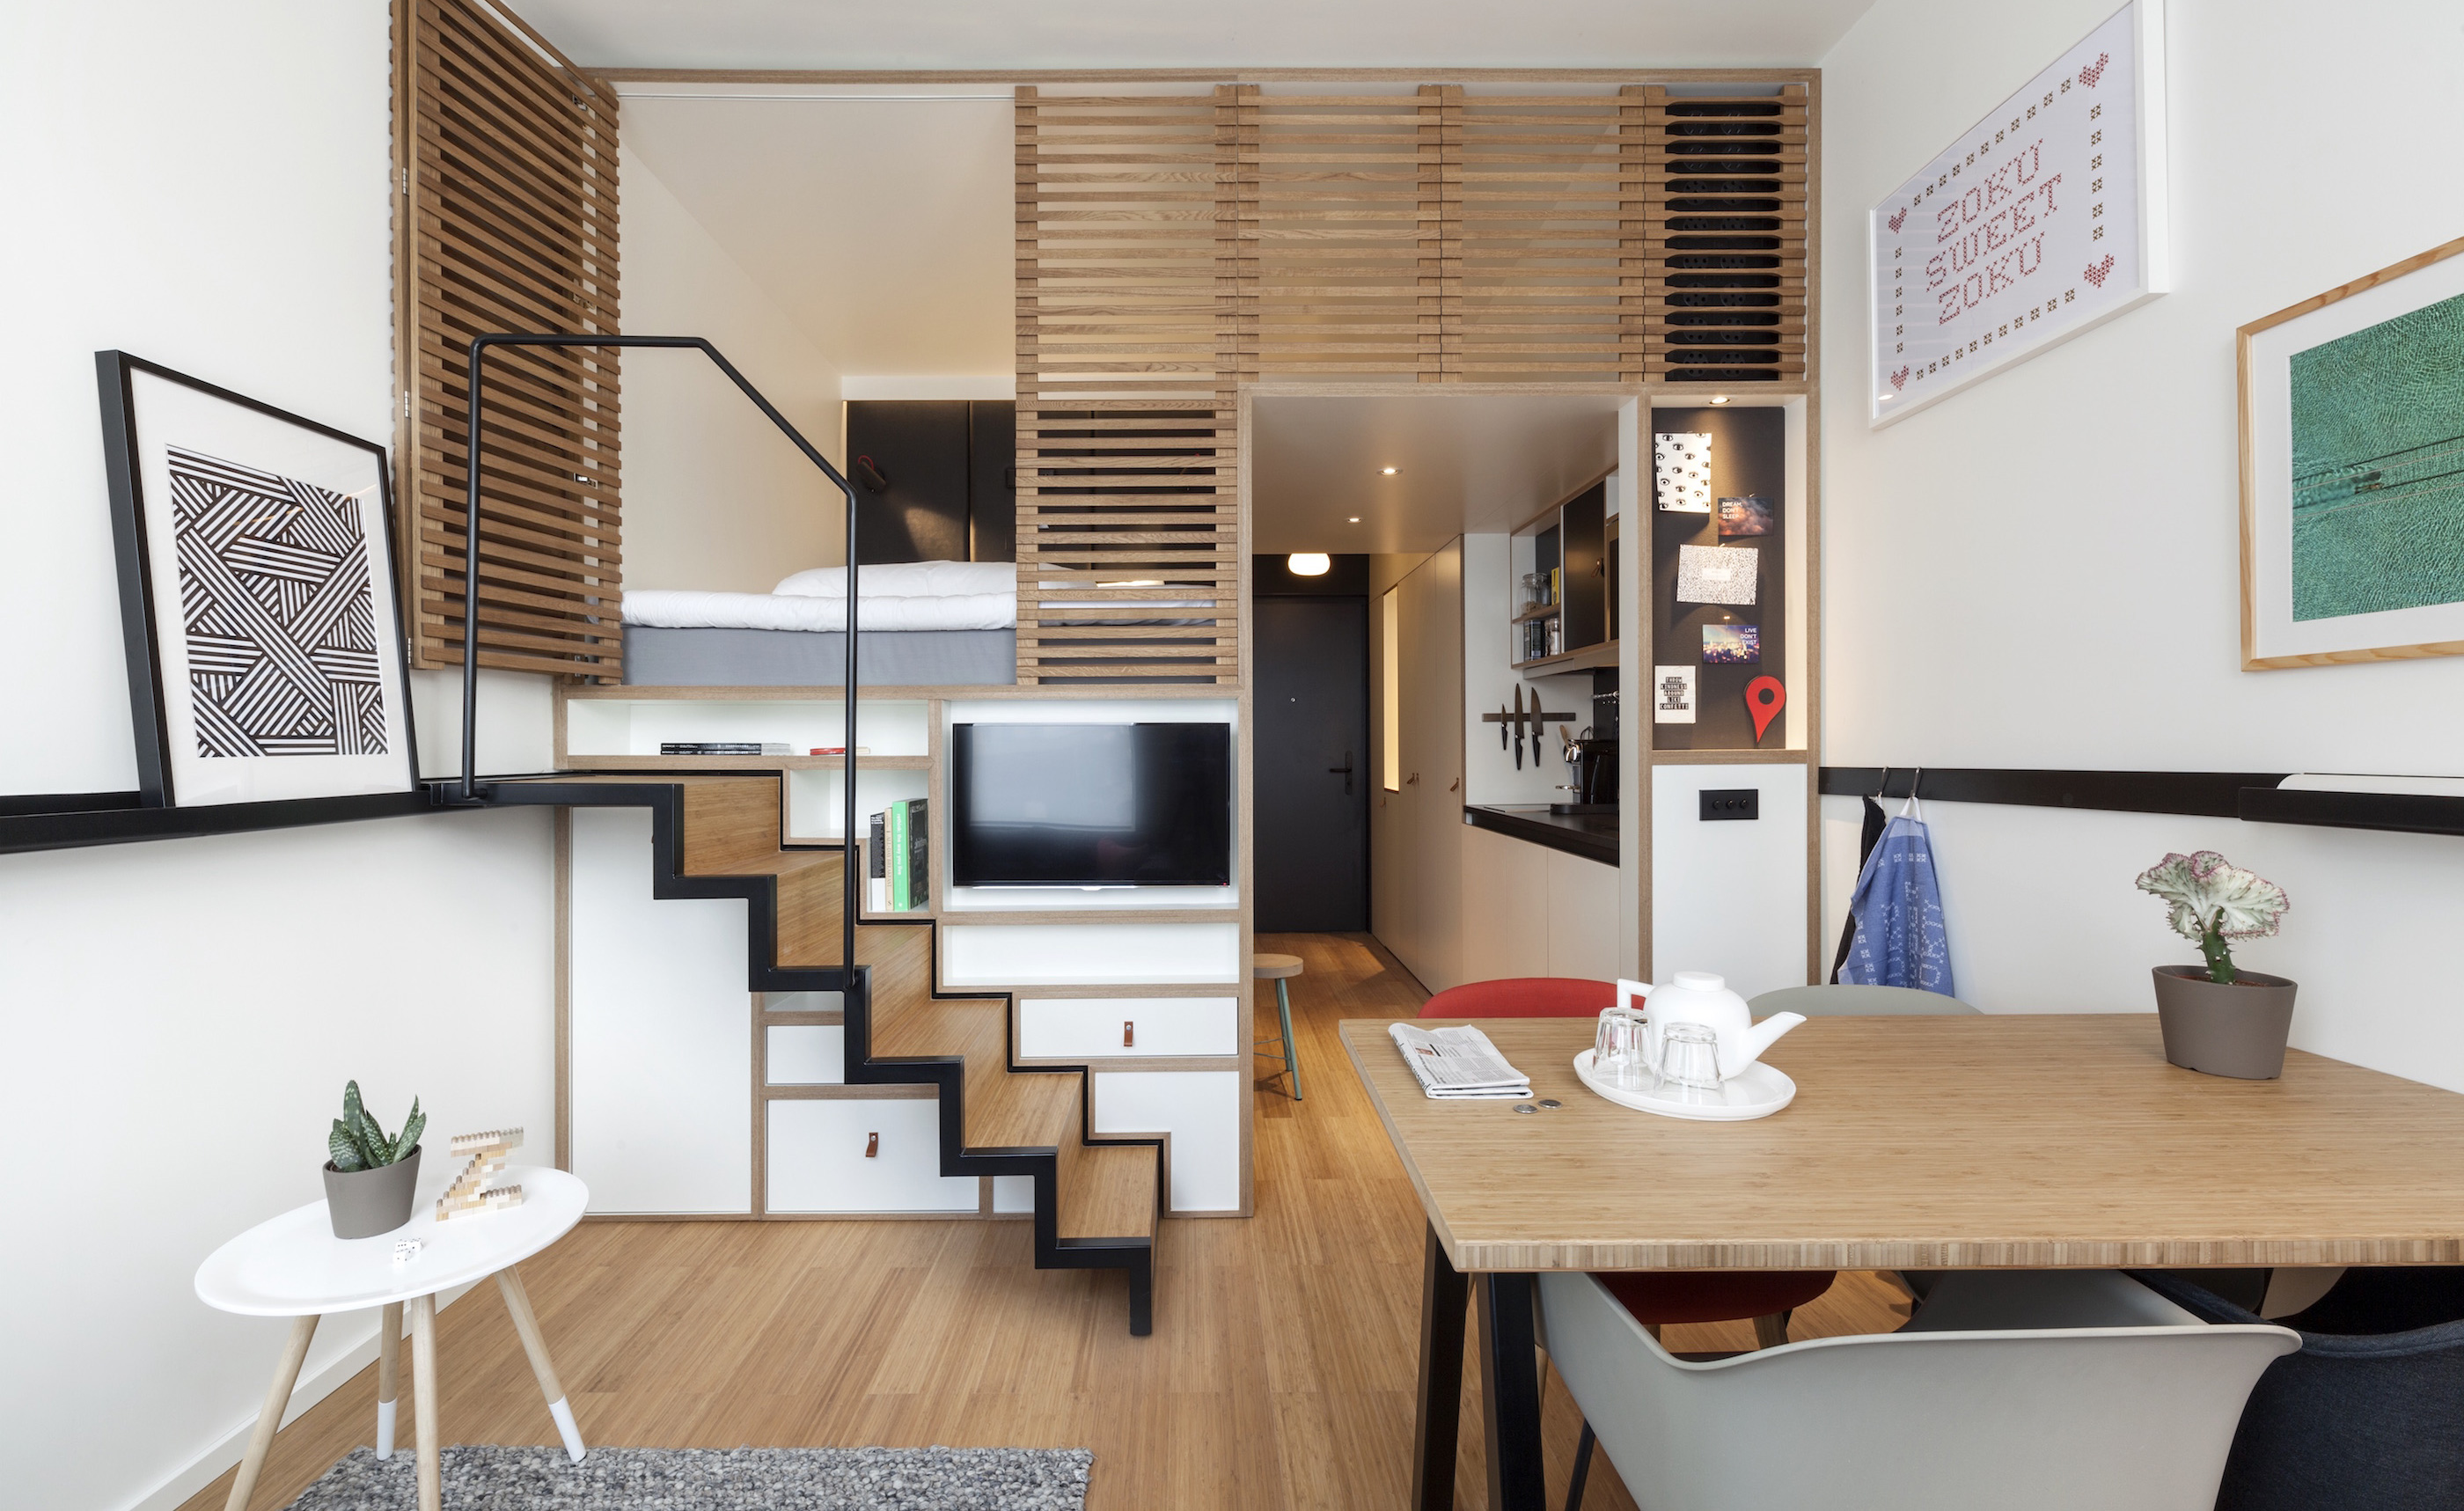 Zoku hotel review amsterdam netherlands wallpaper for Hotel amsterdam cube